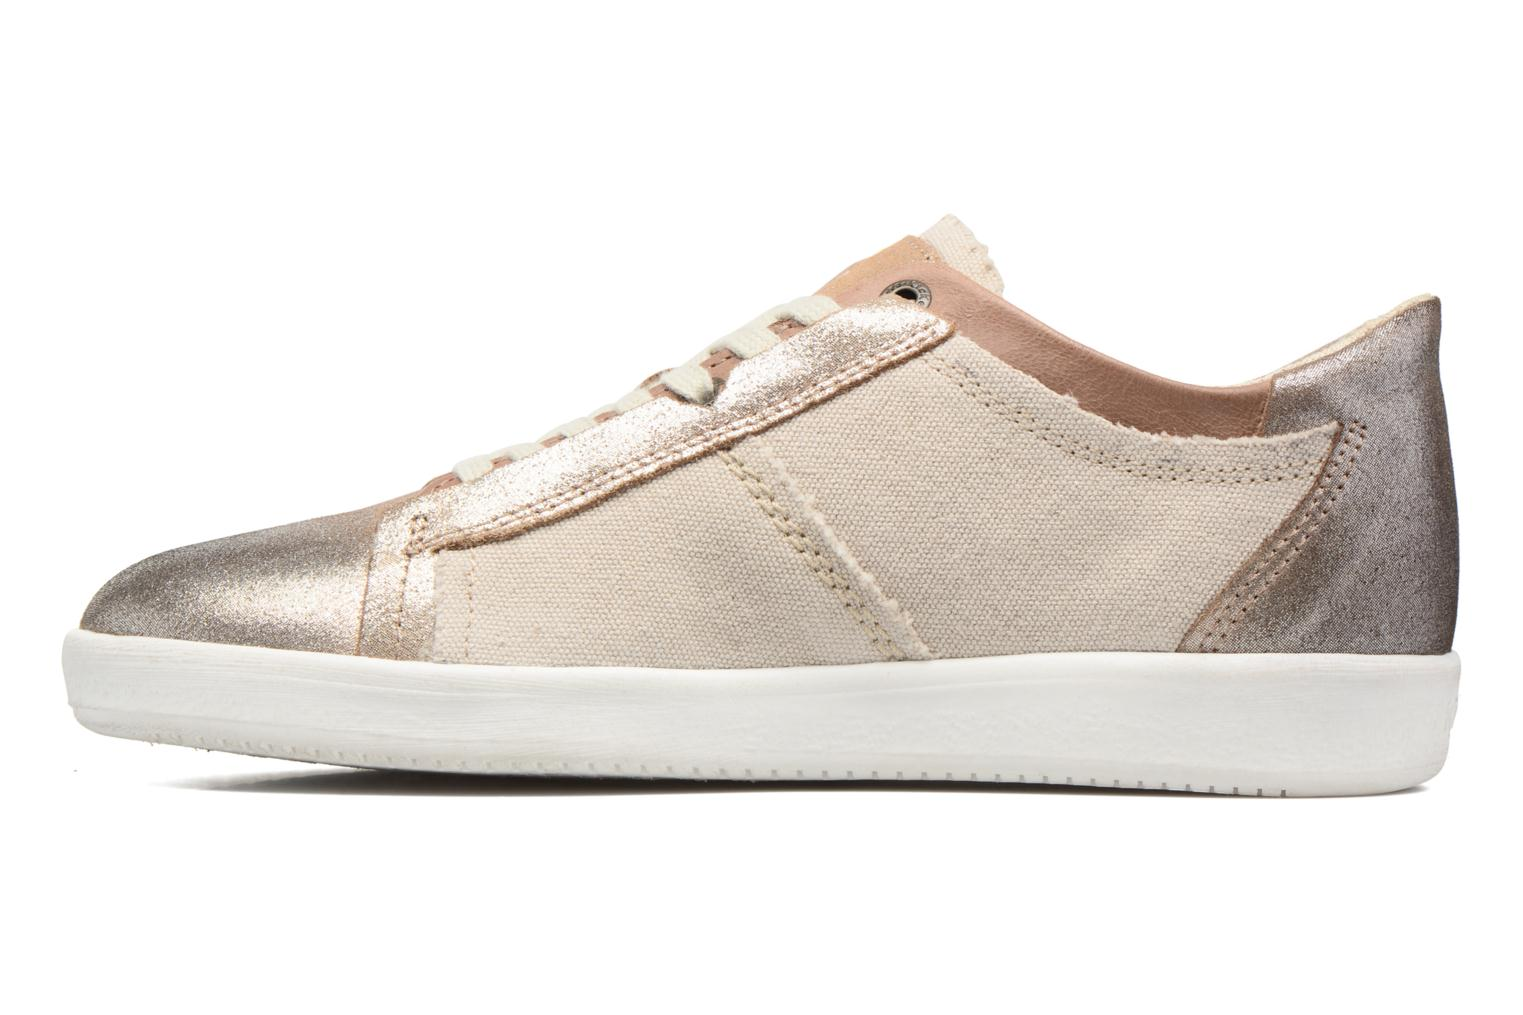 Utløps Sneakernews Klaring For Kickers Happystar Beige hCZfV0